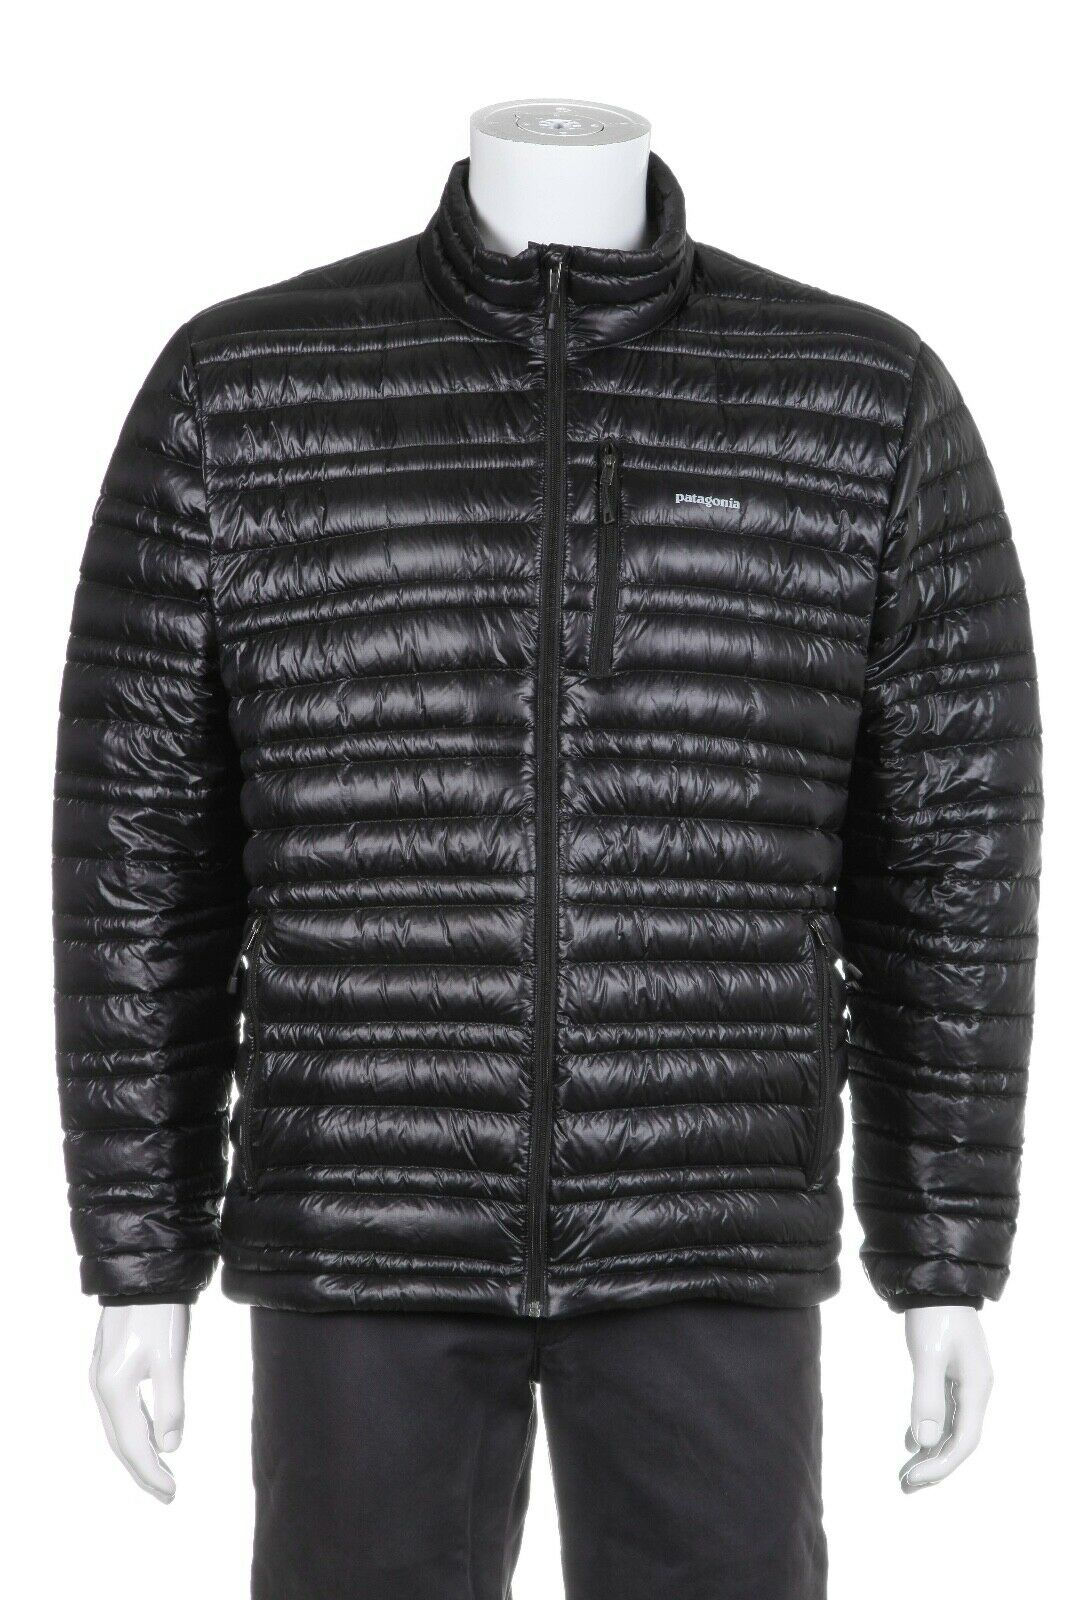 PATAGONIA Black Goose Down Puffer Jacket Ultra Lights Size L